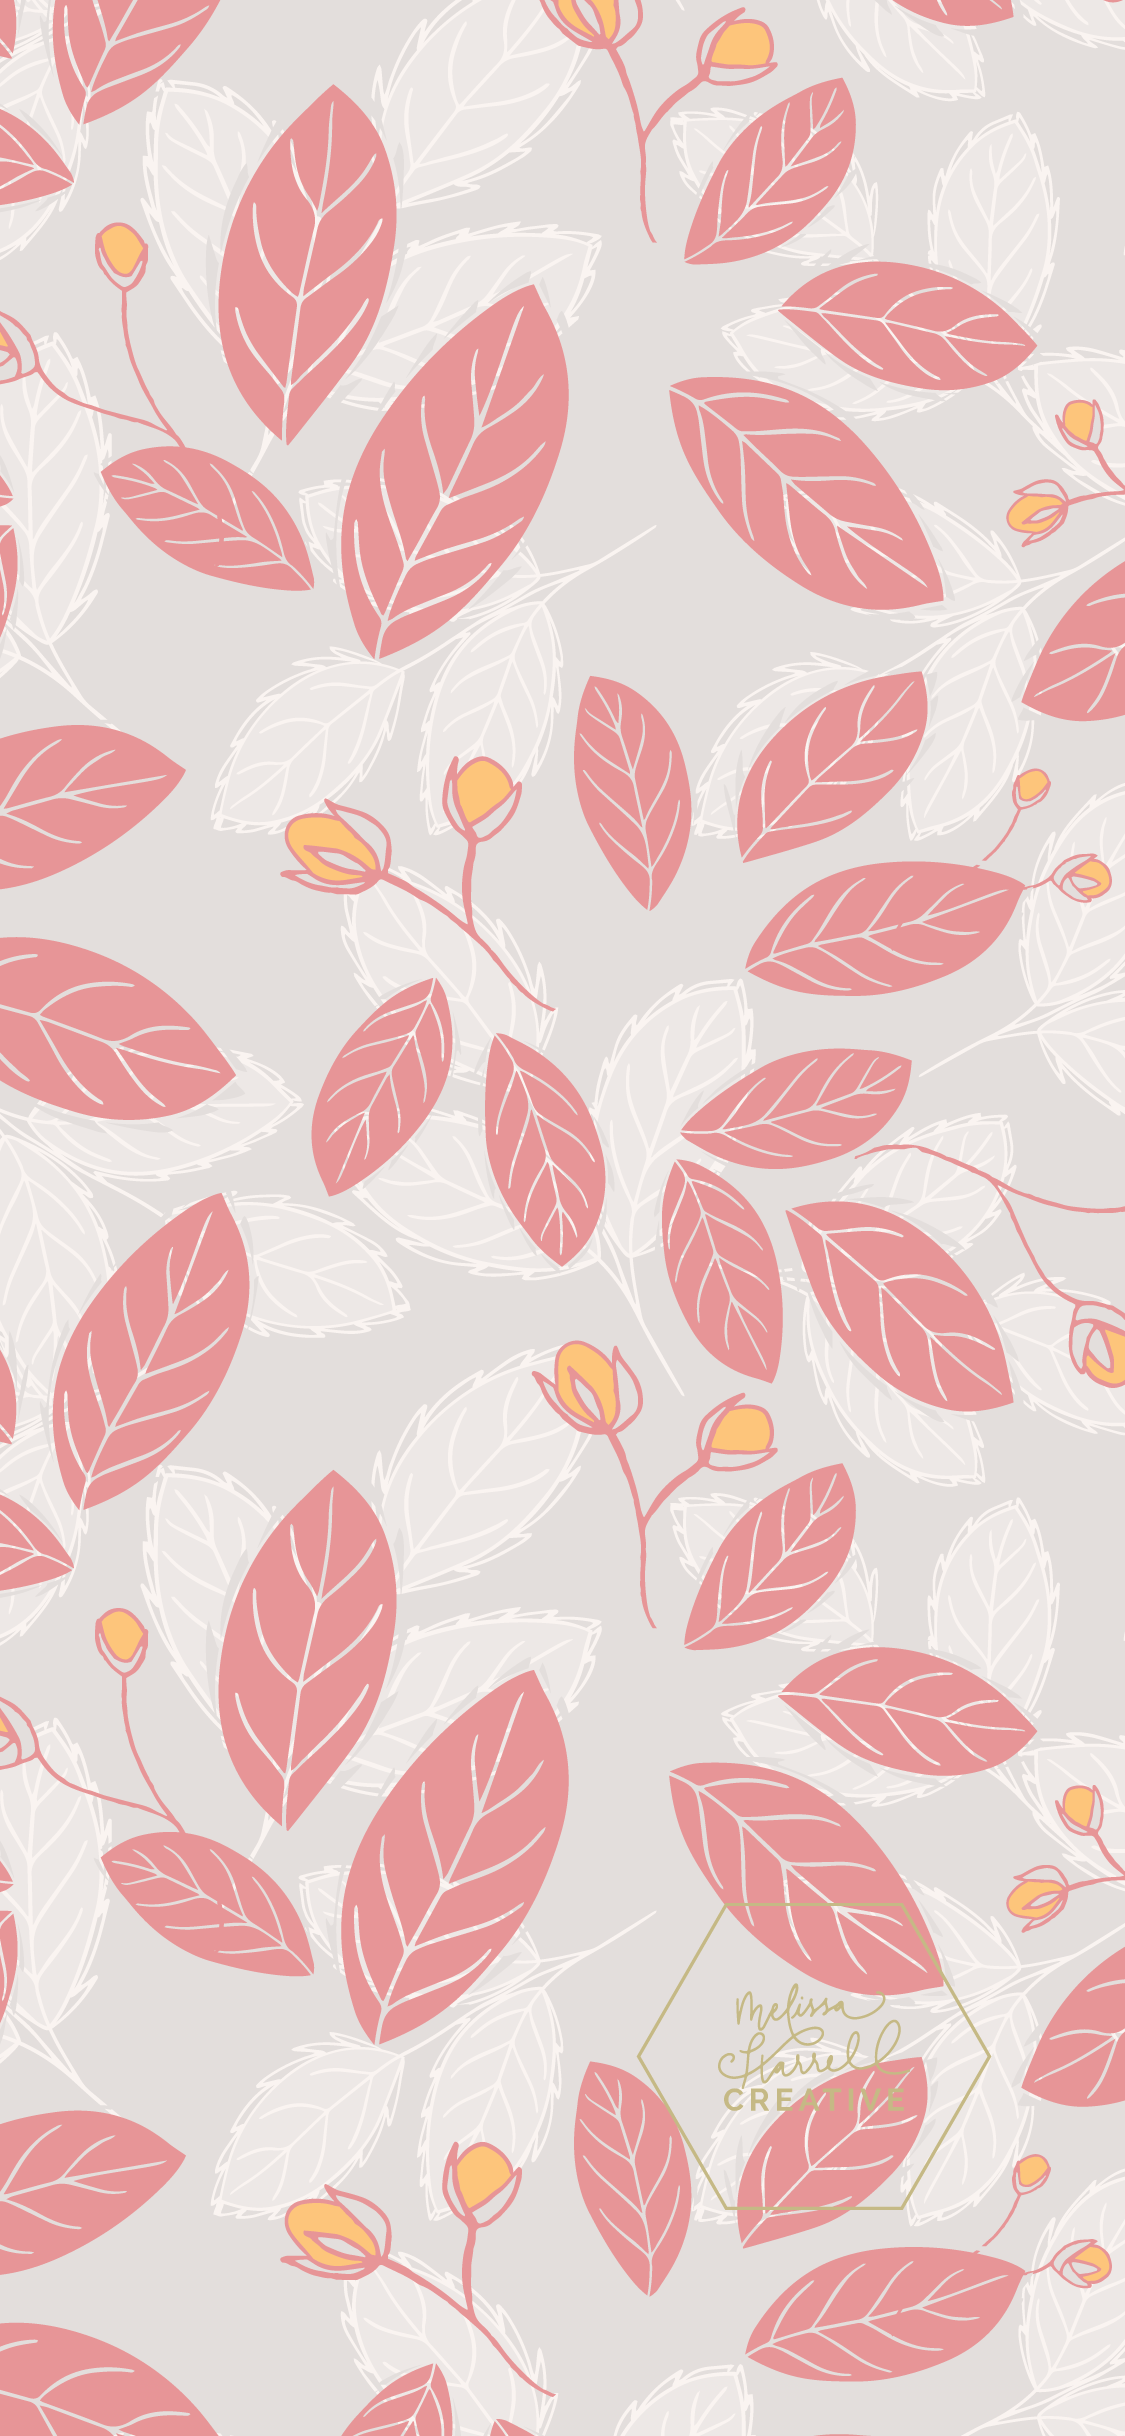 1125x2436 March free wallpapers — Melissa Harrell Creative